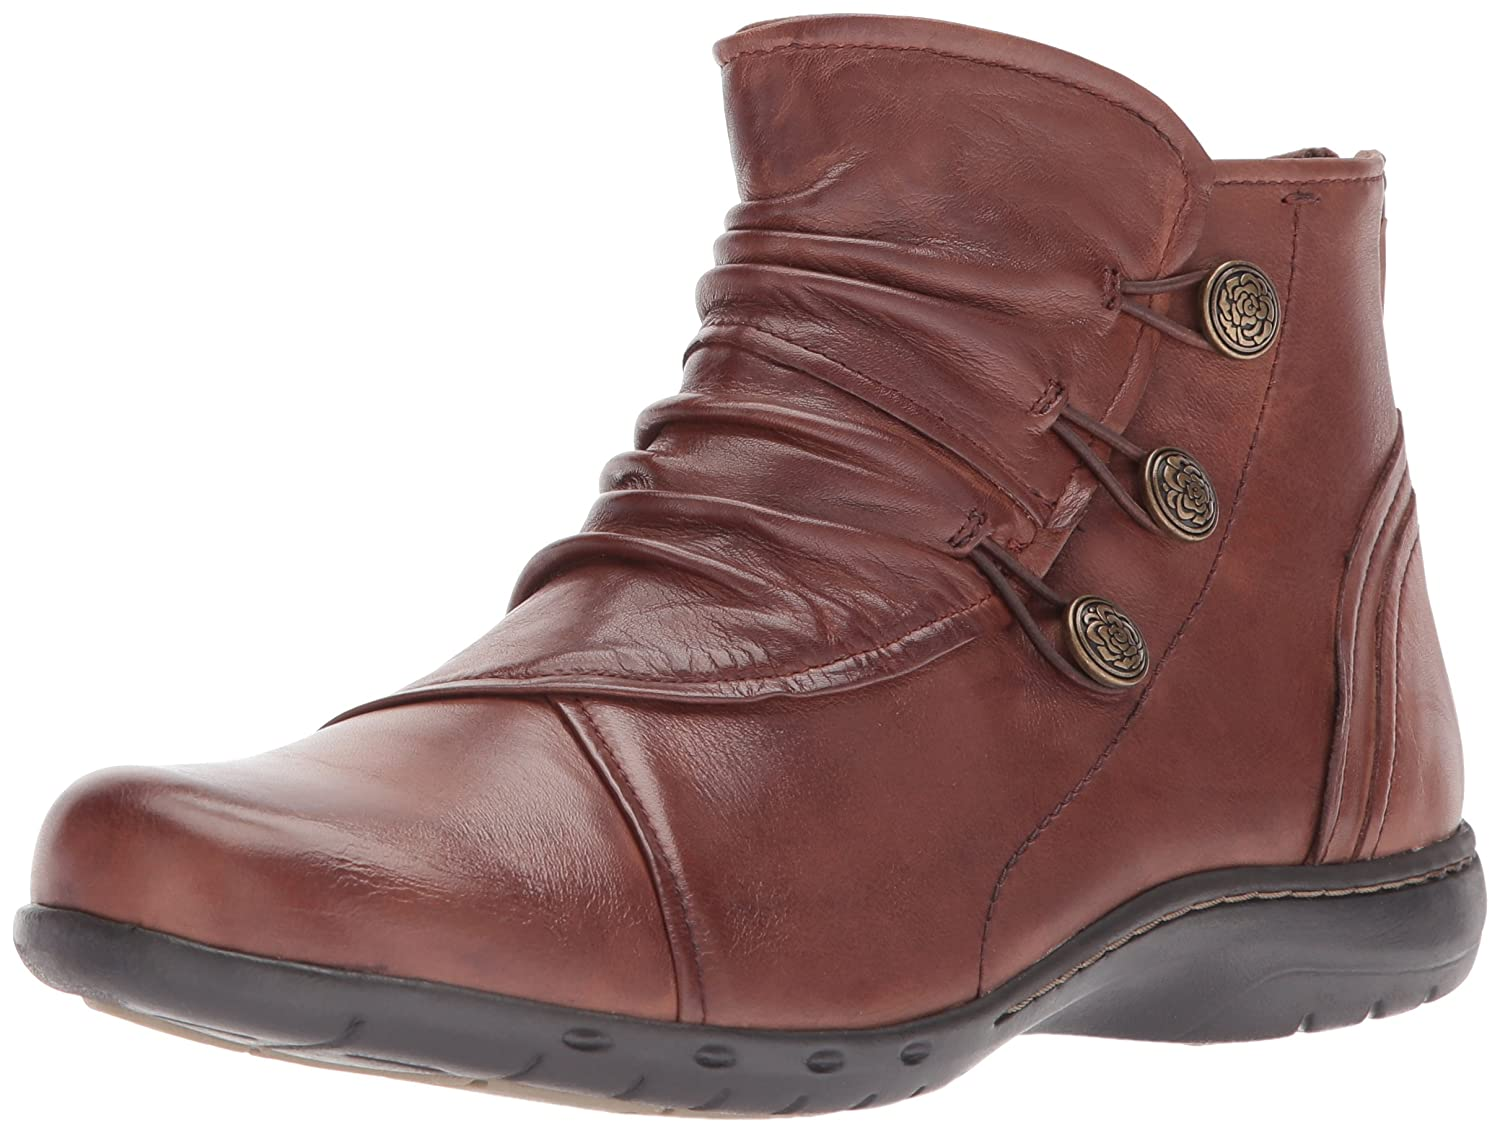 Cobb Hill Women's Penfield Boot B01N7VY4W7 7.5 2E US|Almond Leather